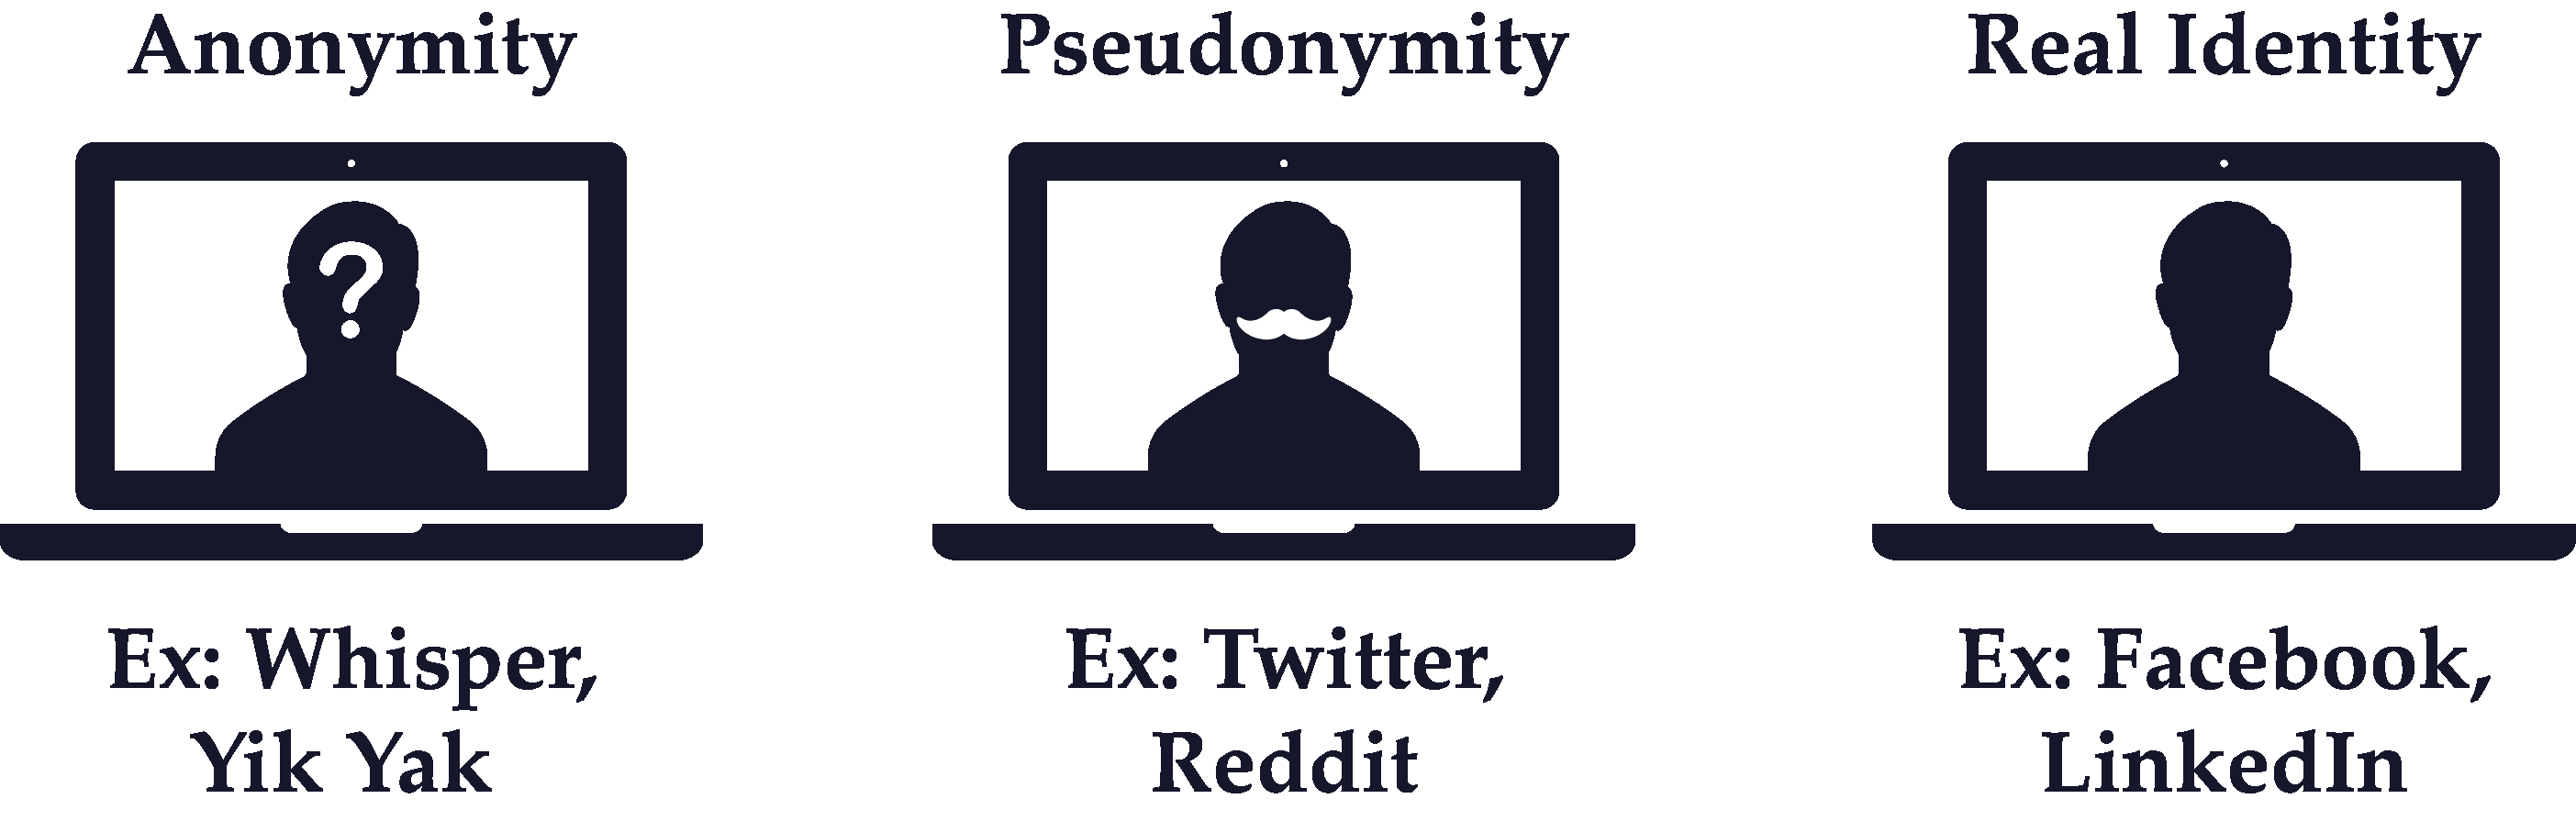 Real Identity vs Pseudonymity vs Anonymity | The Network Effects Bible |  Guides